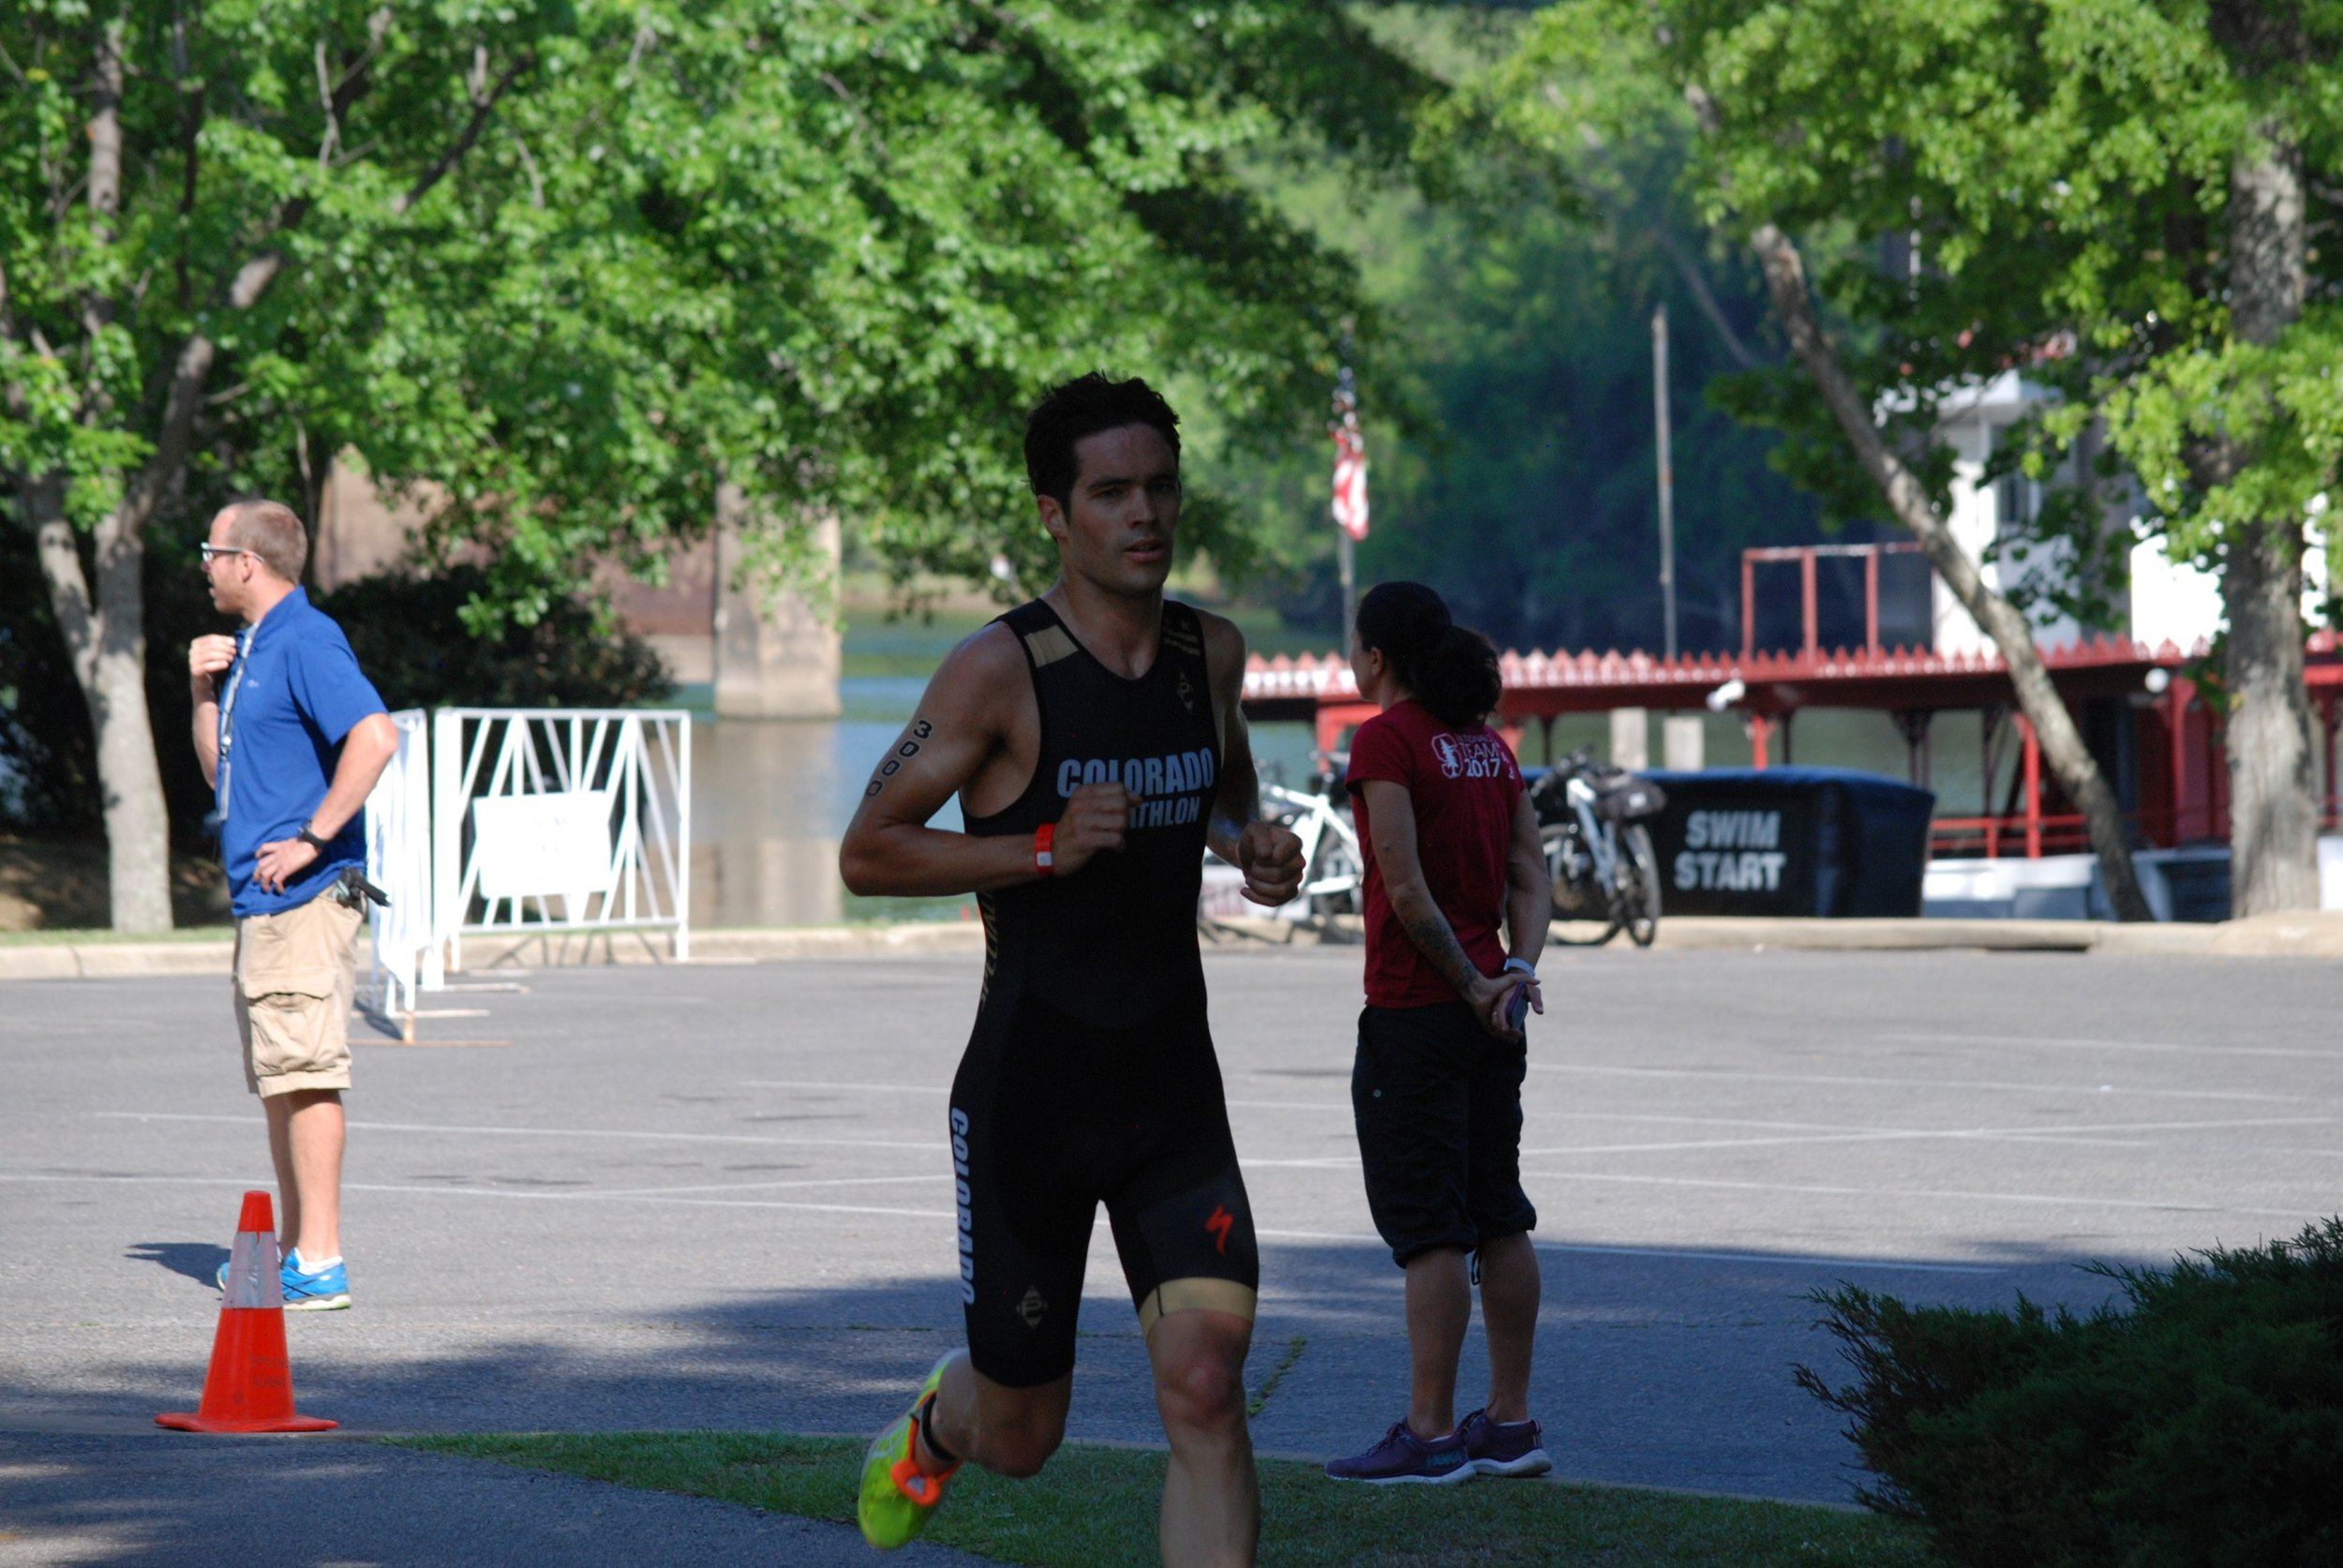 Around 2.5 km into the run. I had build a 10 second lead by this point.